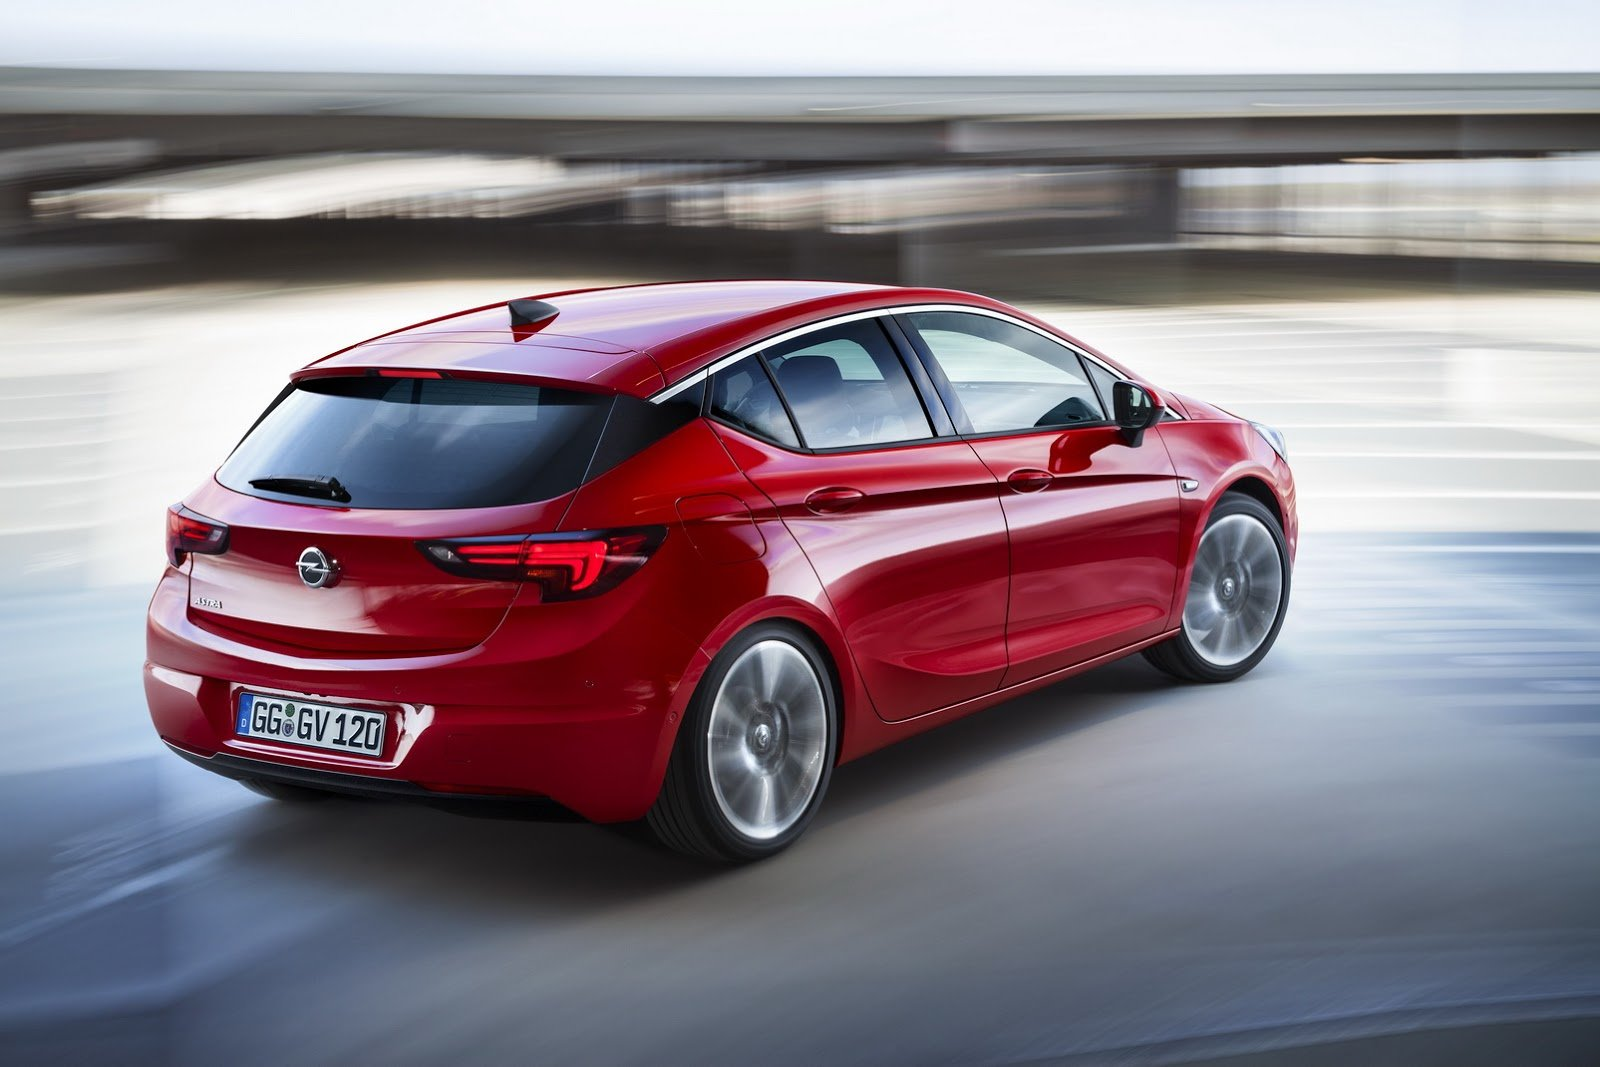 Latest All New Opel Astra Wins Car Of The Year 2016 Award Free Download